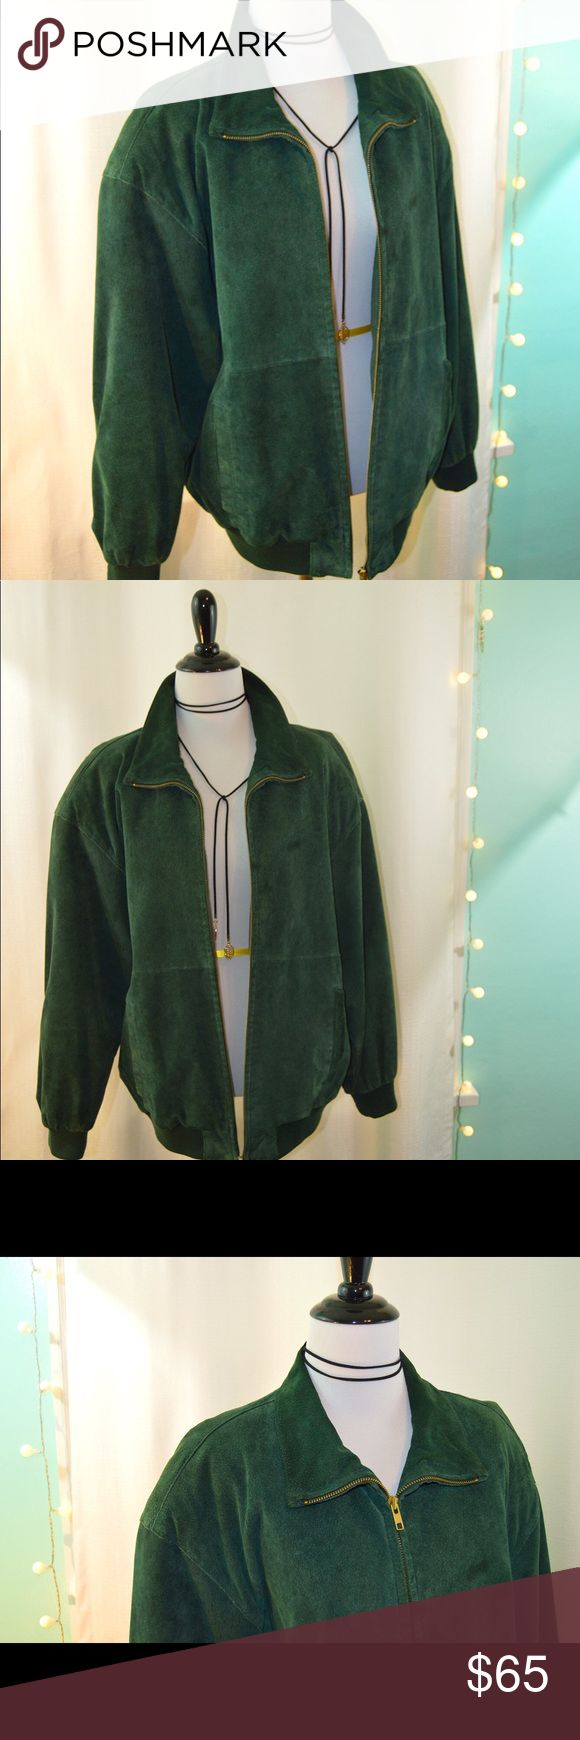 """PELLE 100% Genuine Suede Leather Jacket Rich emerald green suede jacket made by iconic brand Pelle. Excellent quality and in good pre-owned condition, will keep you very warm. Women's size Small.  Measurements:  Length back 25.5"""" Sleeve length 20.5"""" Pit to pit 19"""" Pelle Pelle Jackets & Coats"""